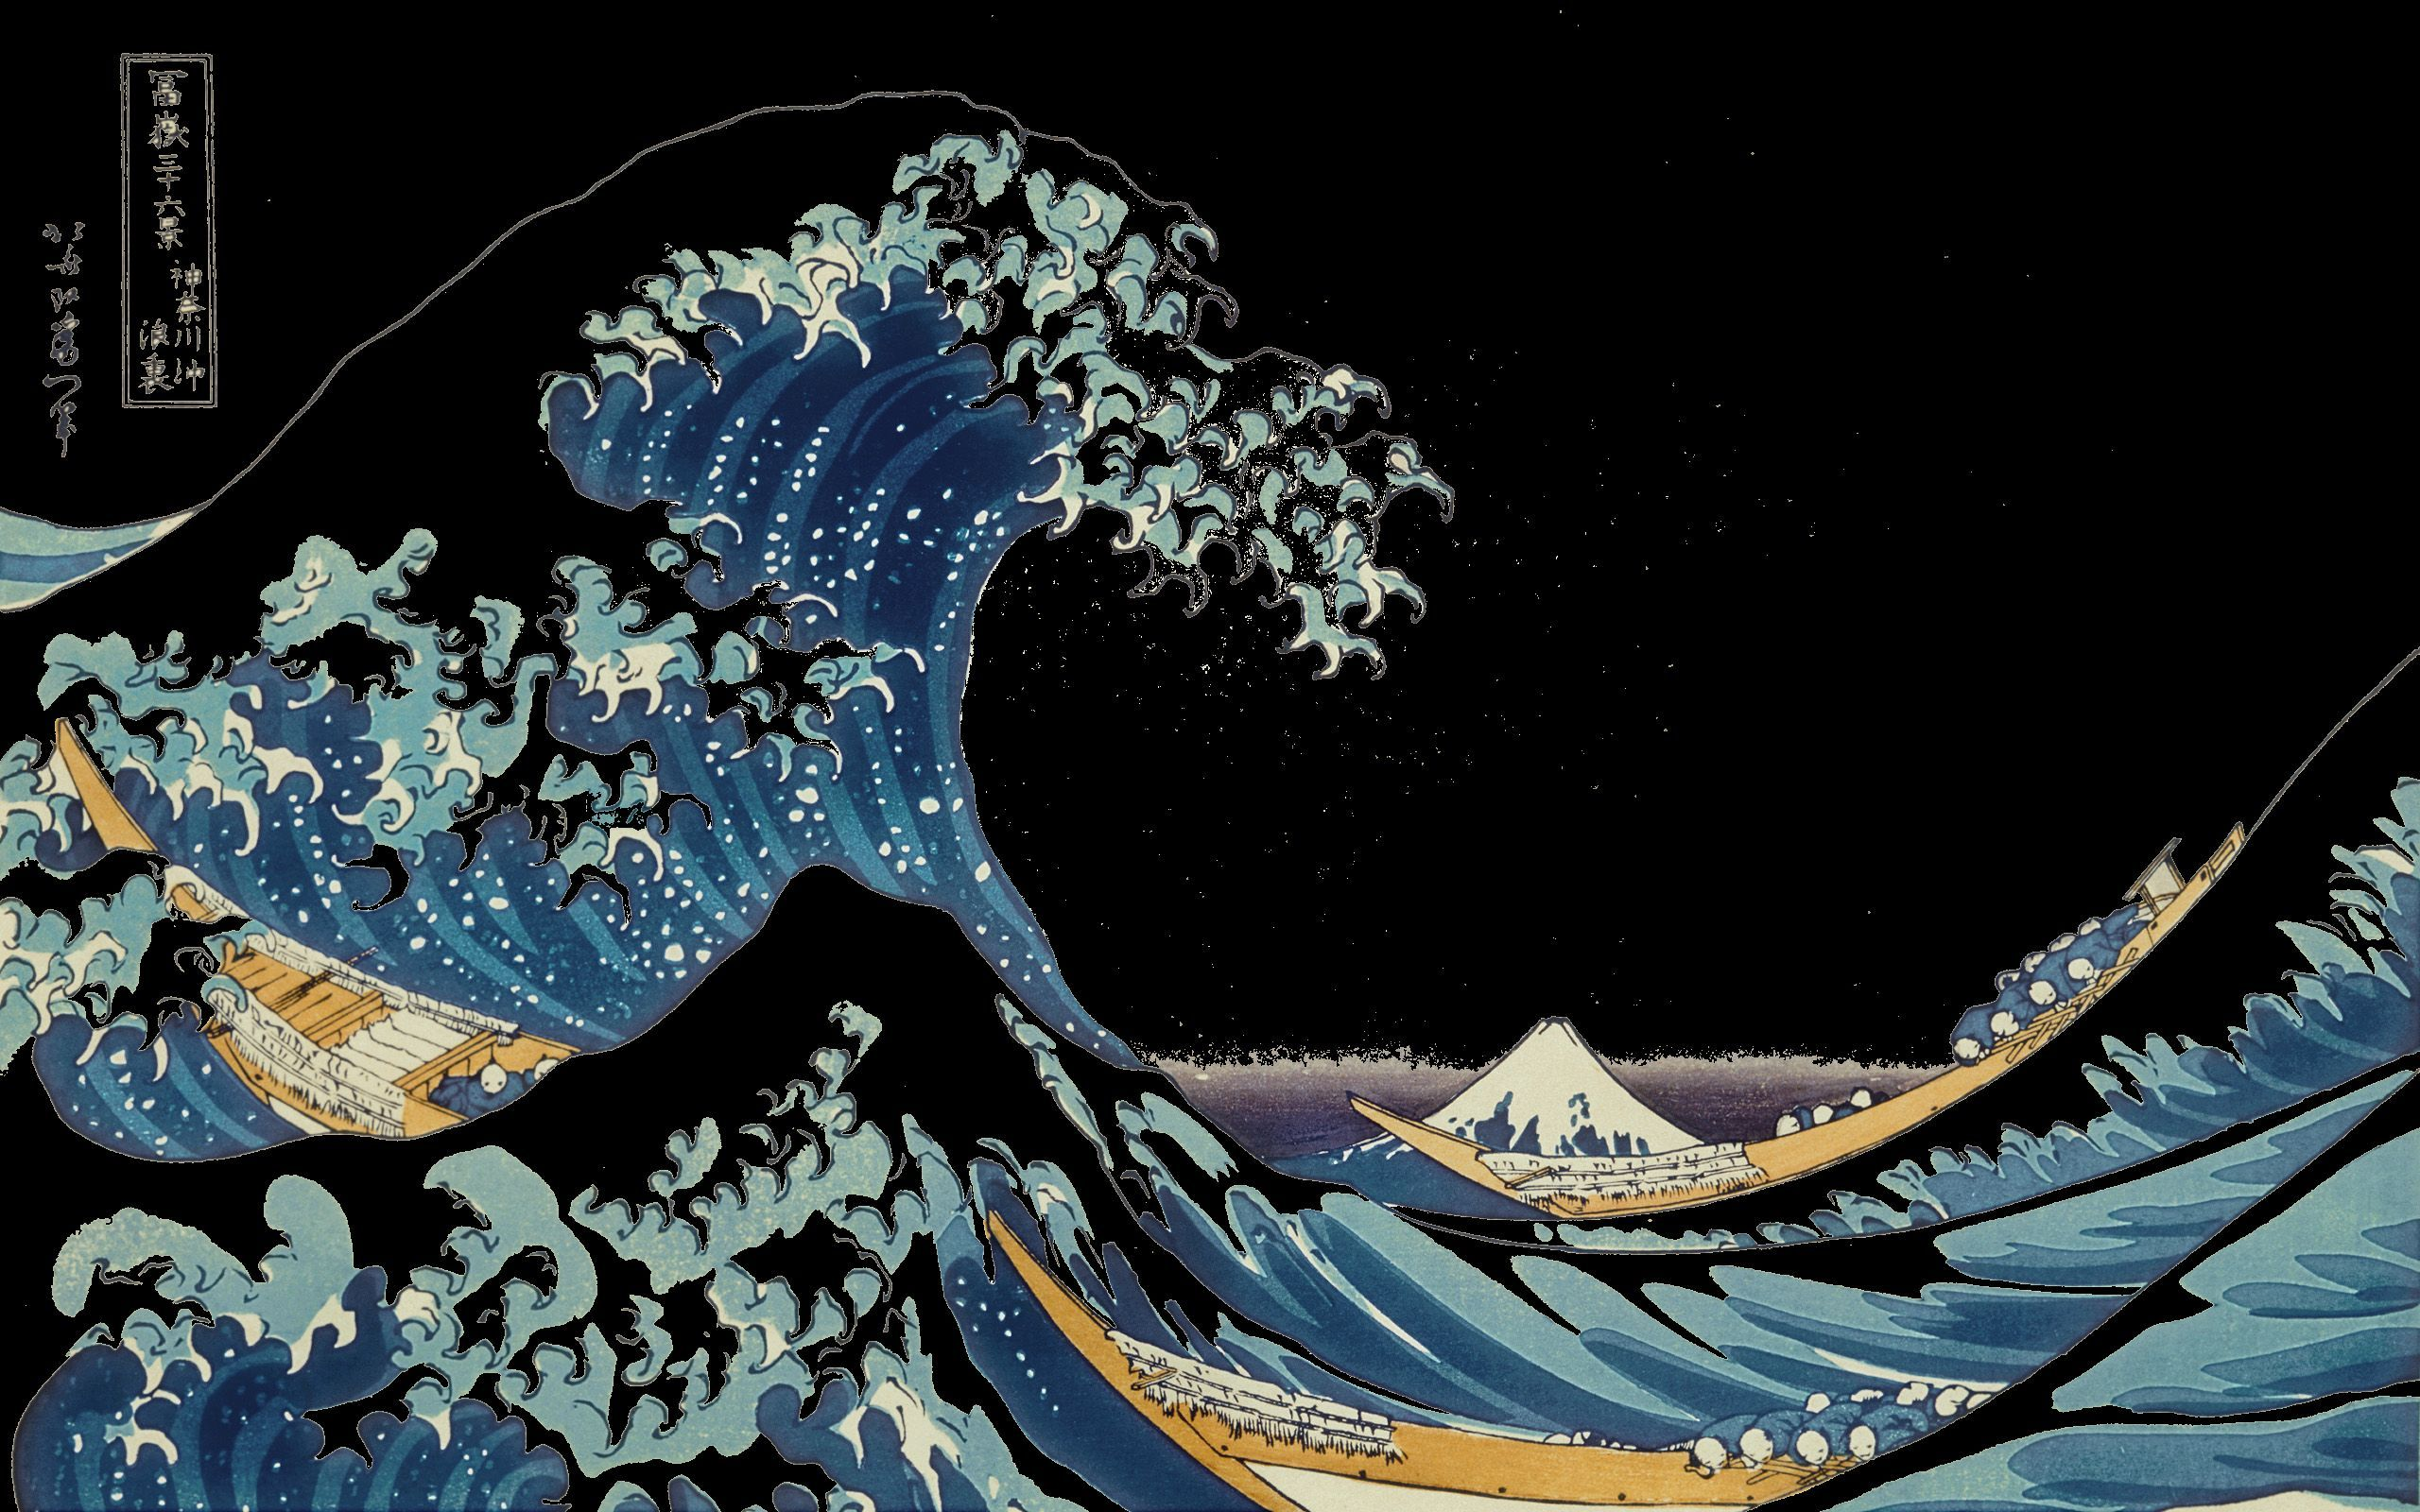 Download The The Great Wave Negative Wallpaper The Great Wave